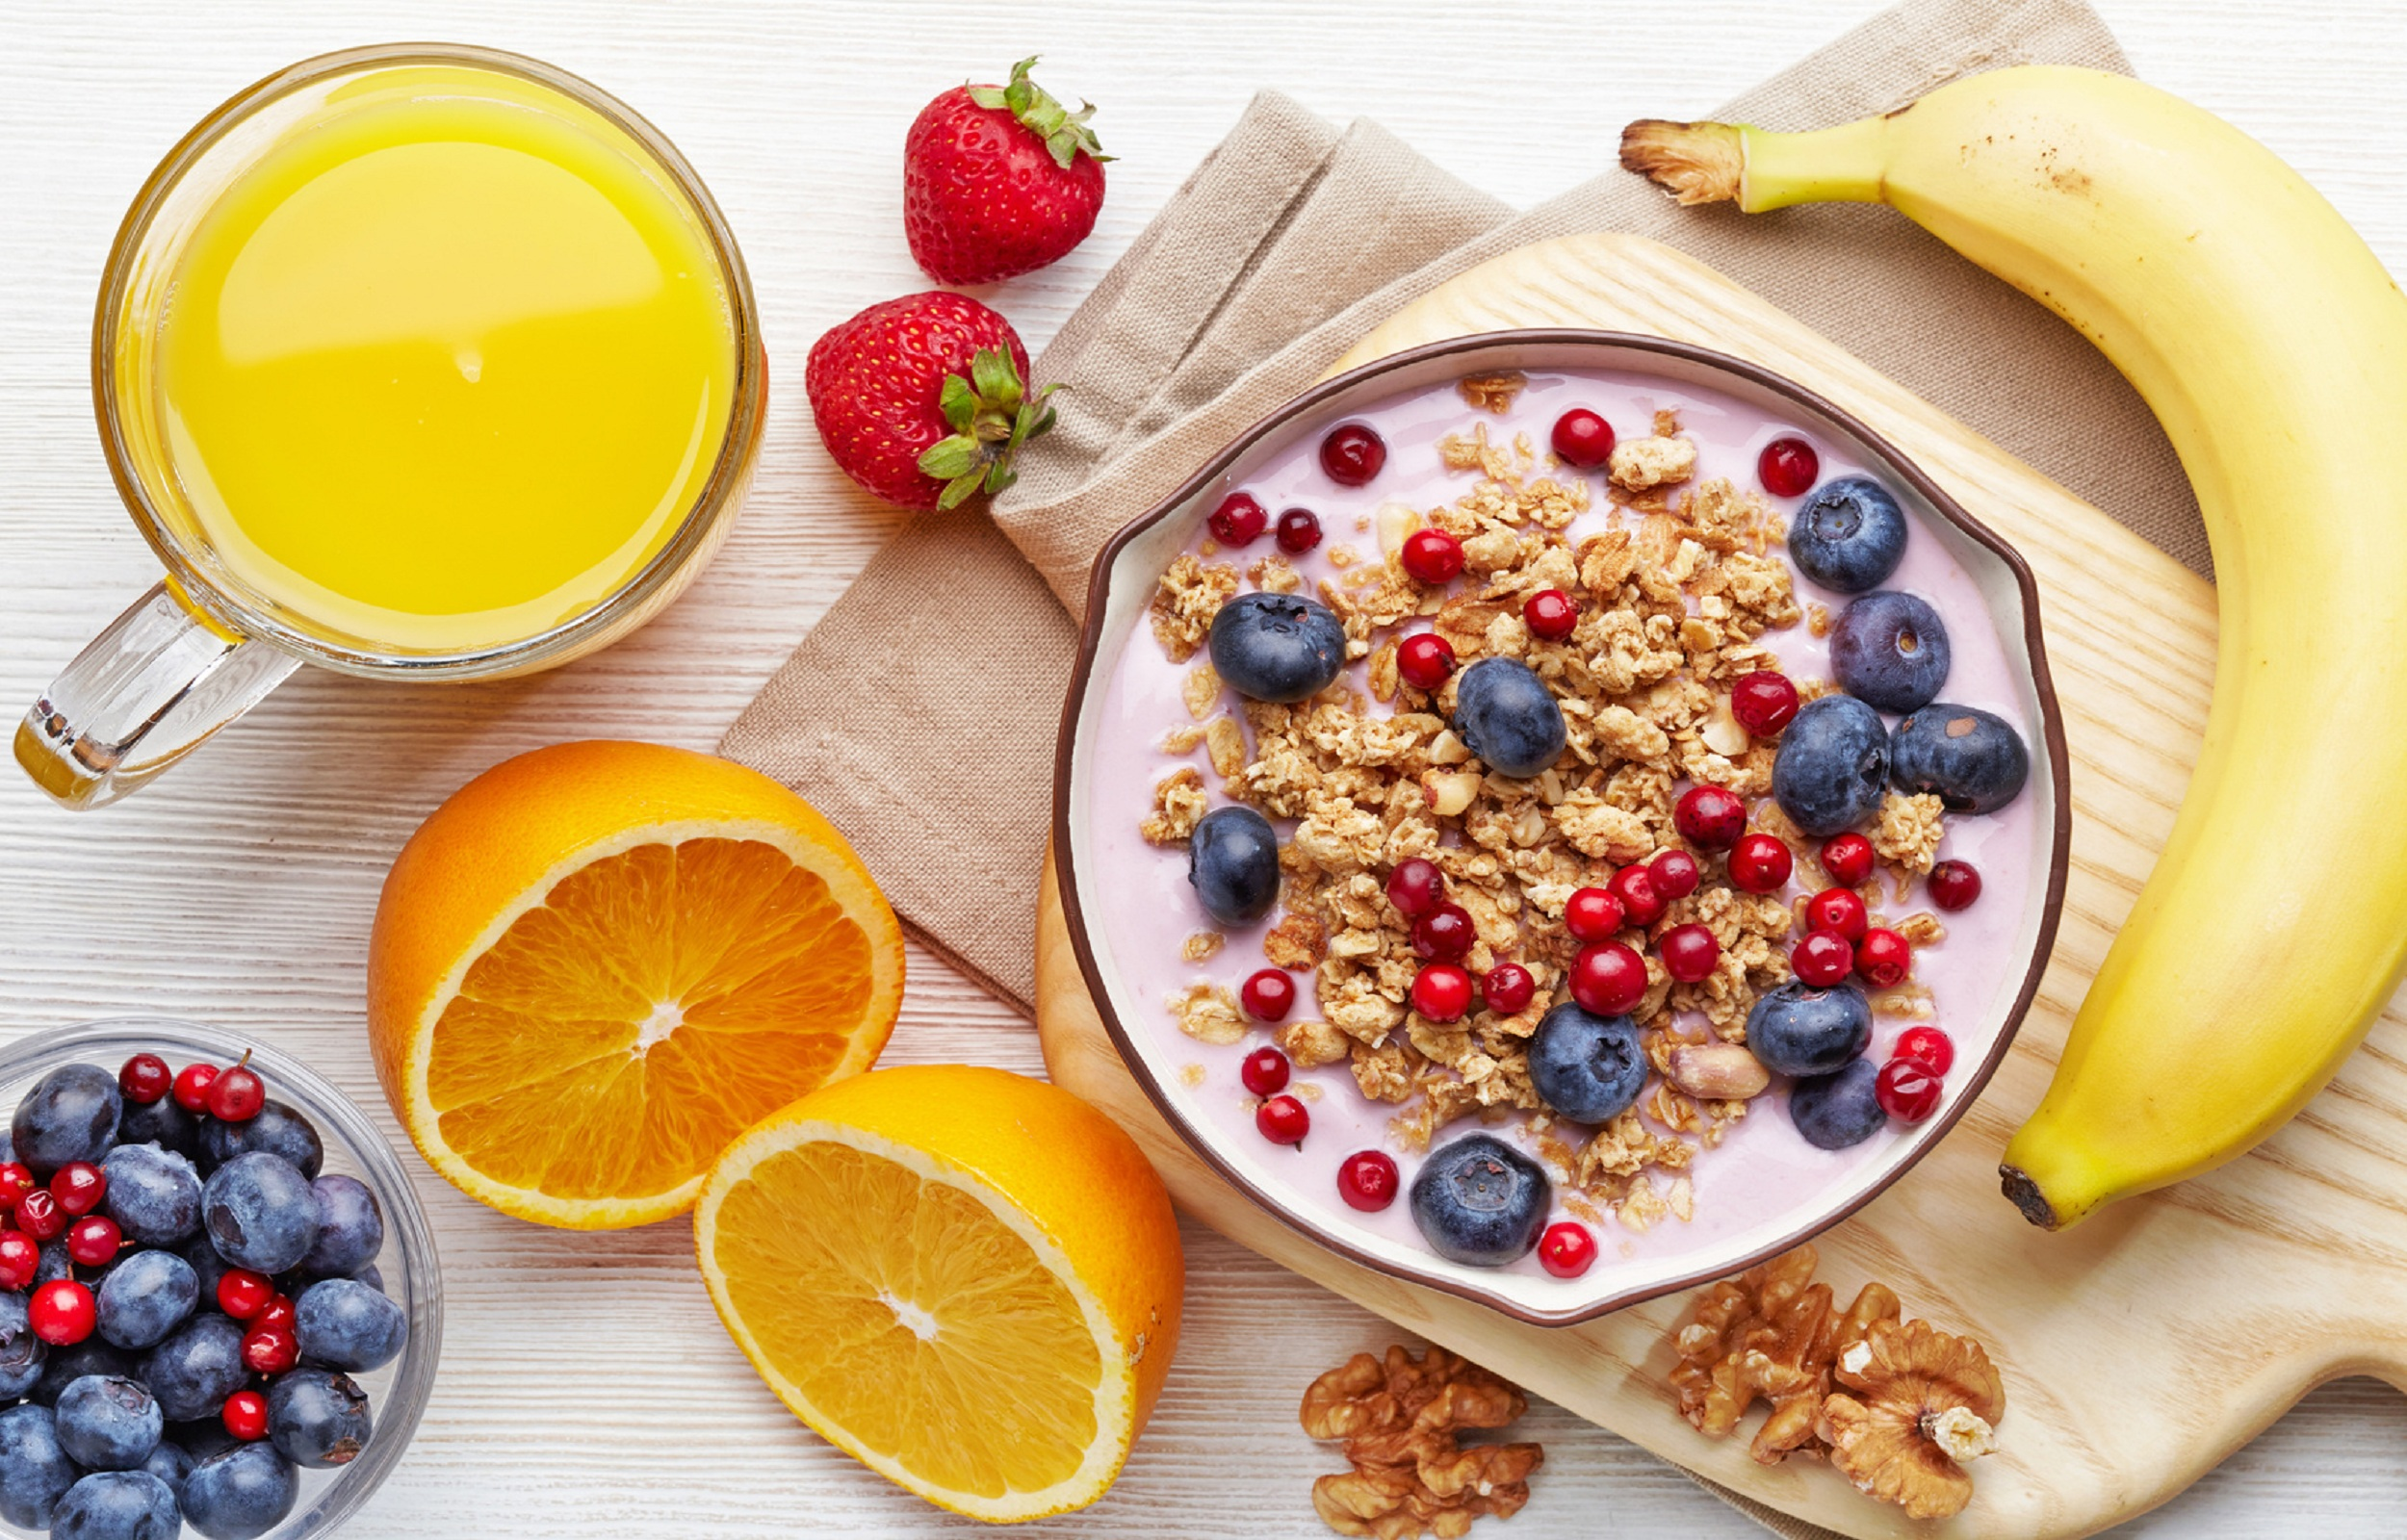 5 Healthy Breakfast Ideas To Help You Lose Weight Faster